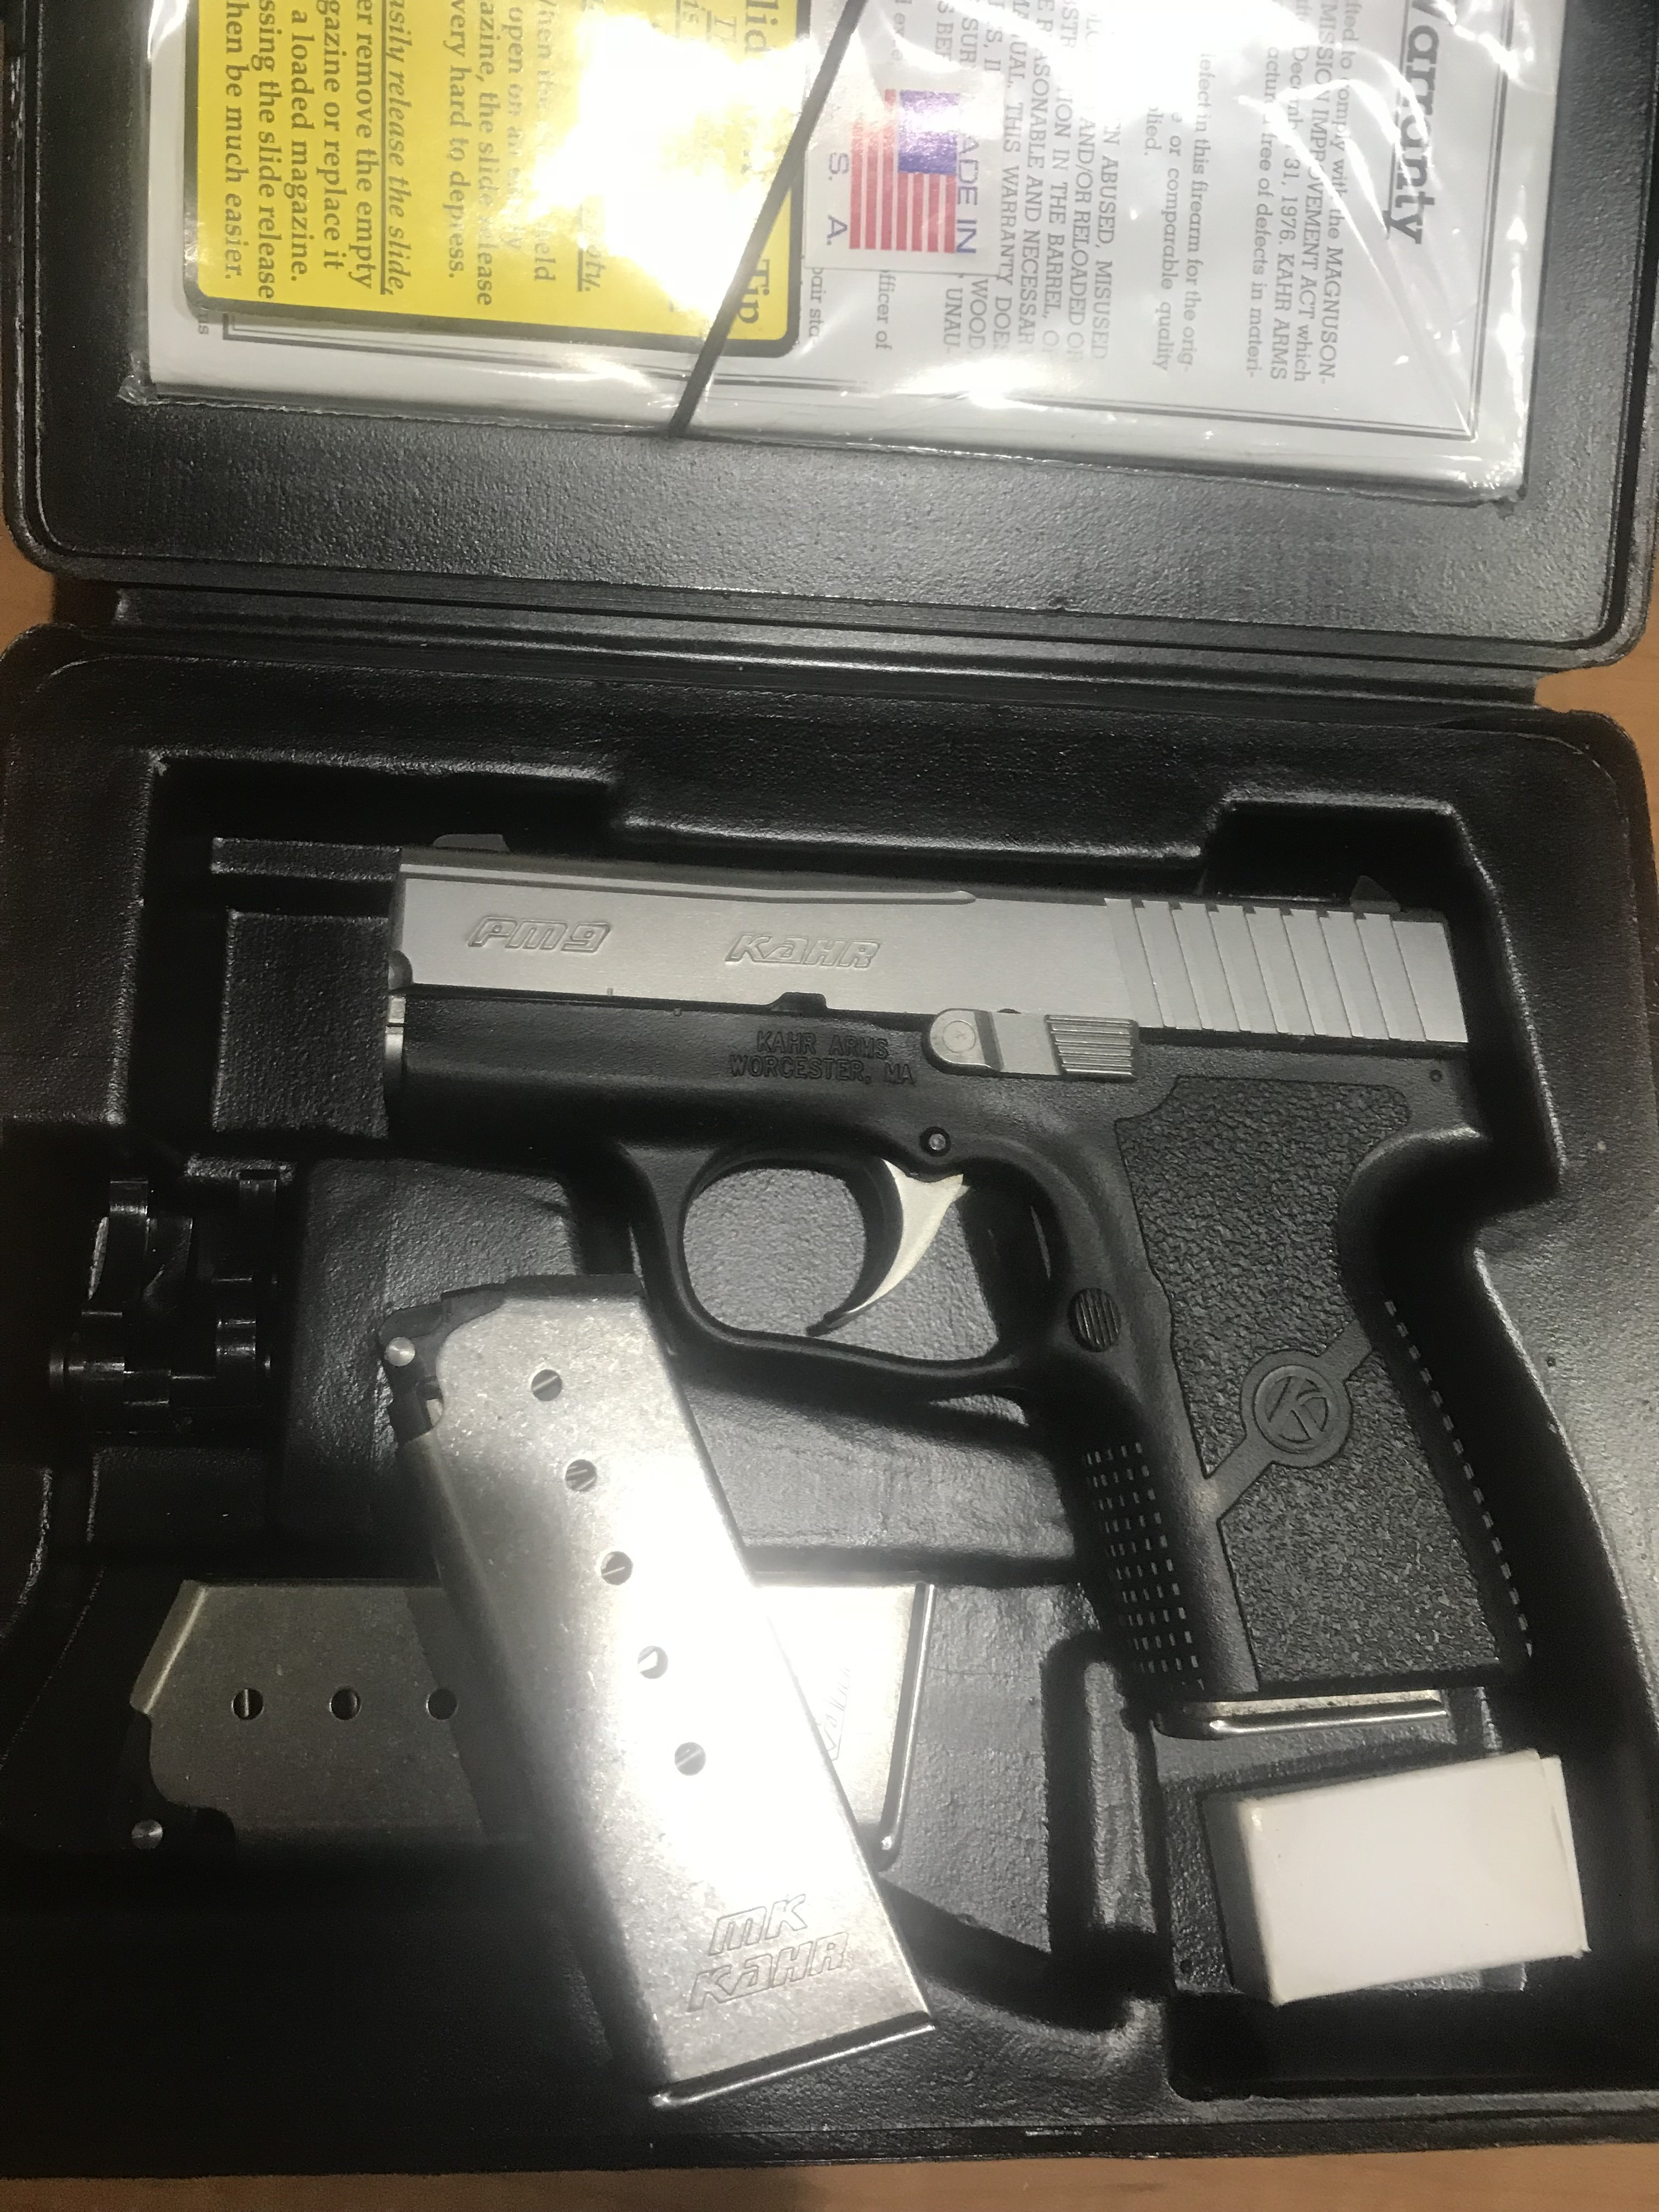 Kahr PM9 | Mississippi Gun Owners - Community for